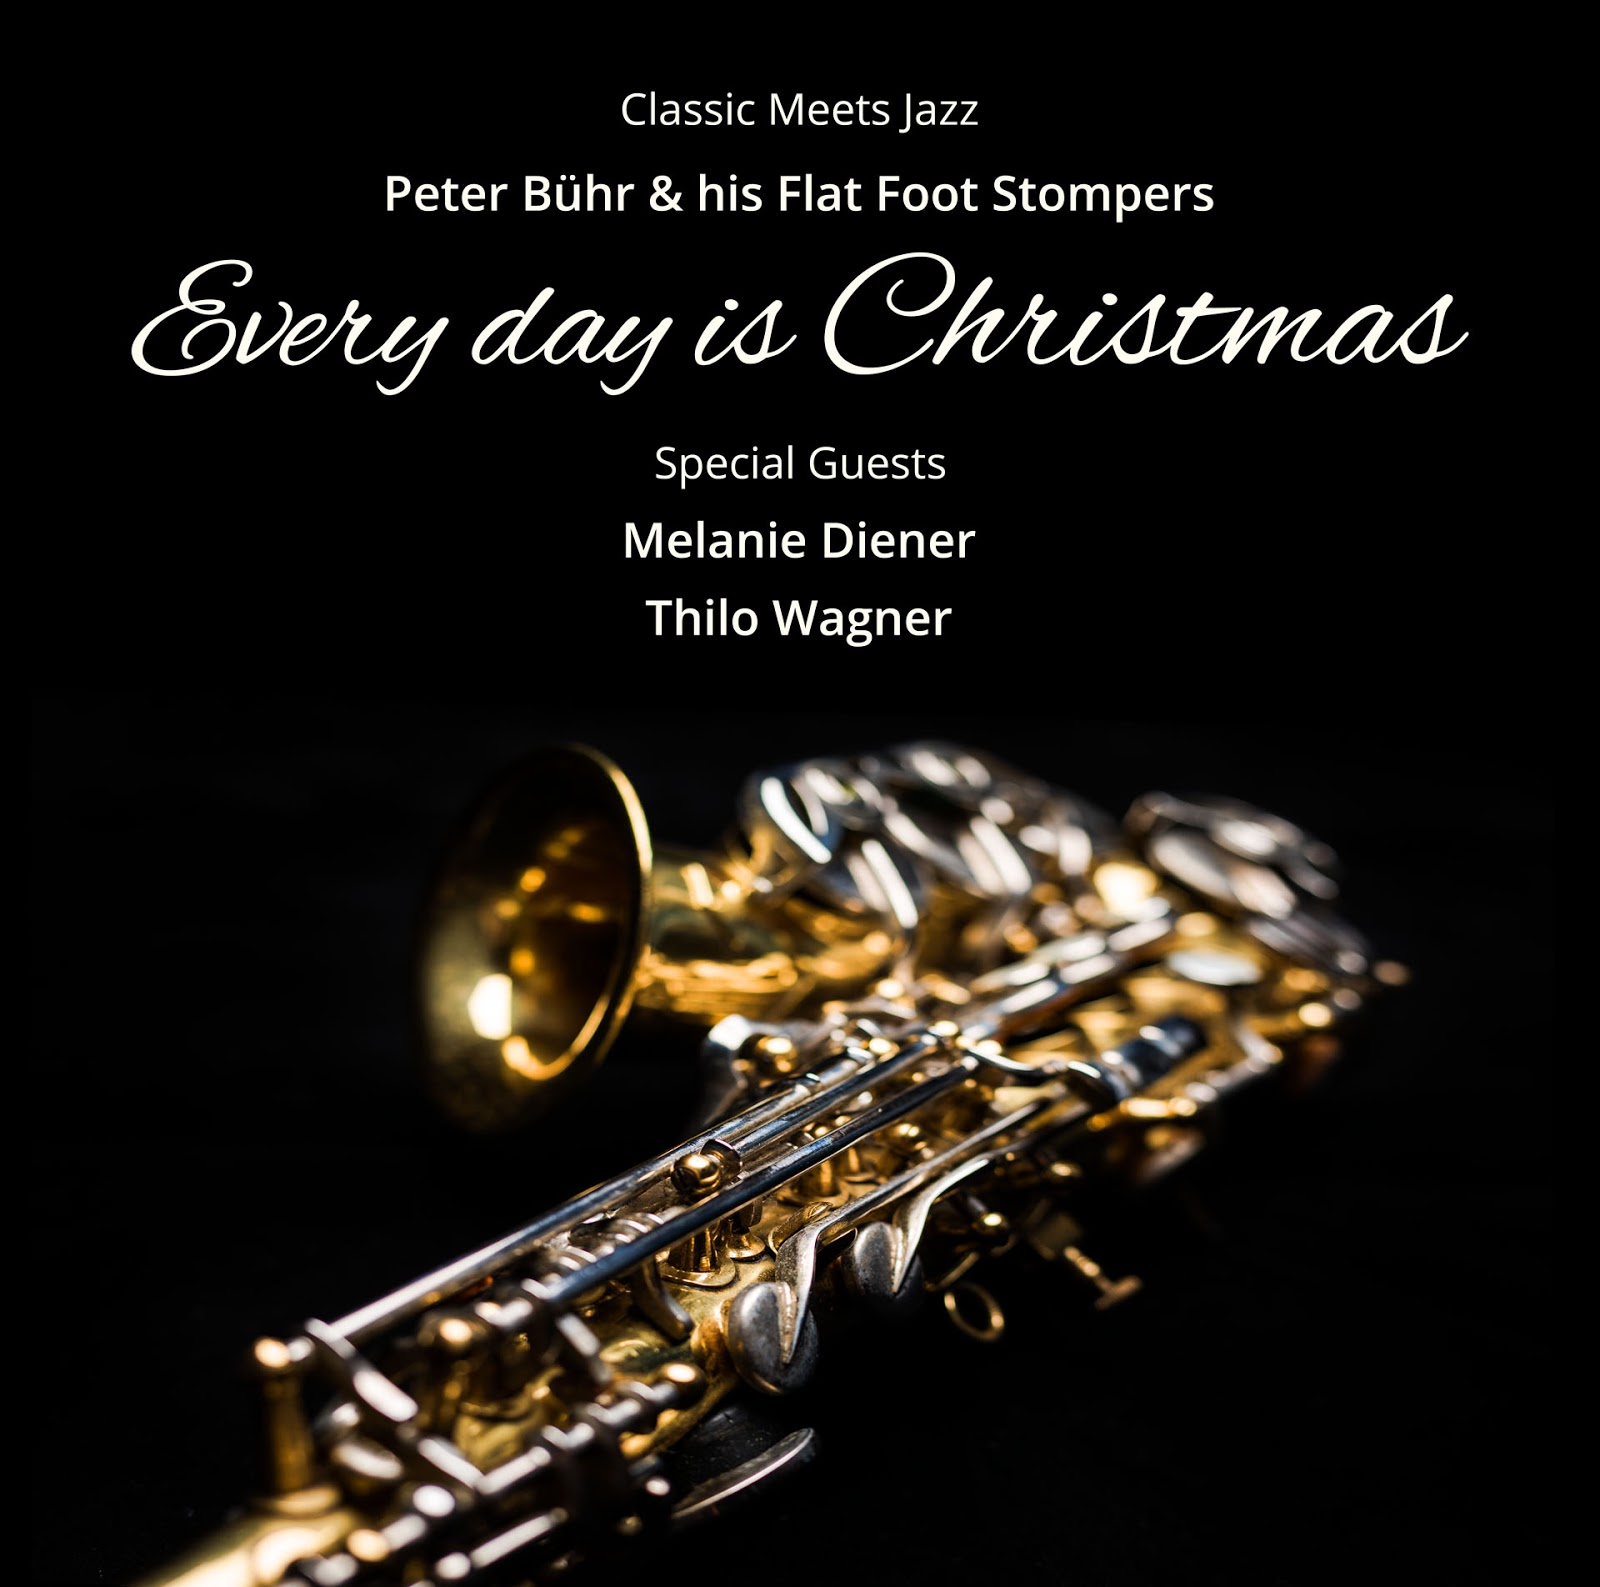 Every day is Christmas - On CD und Live On Stage